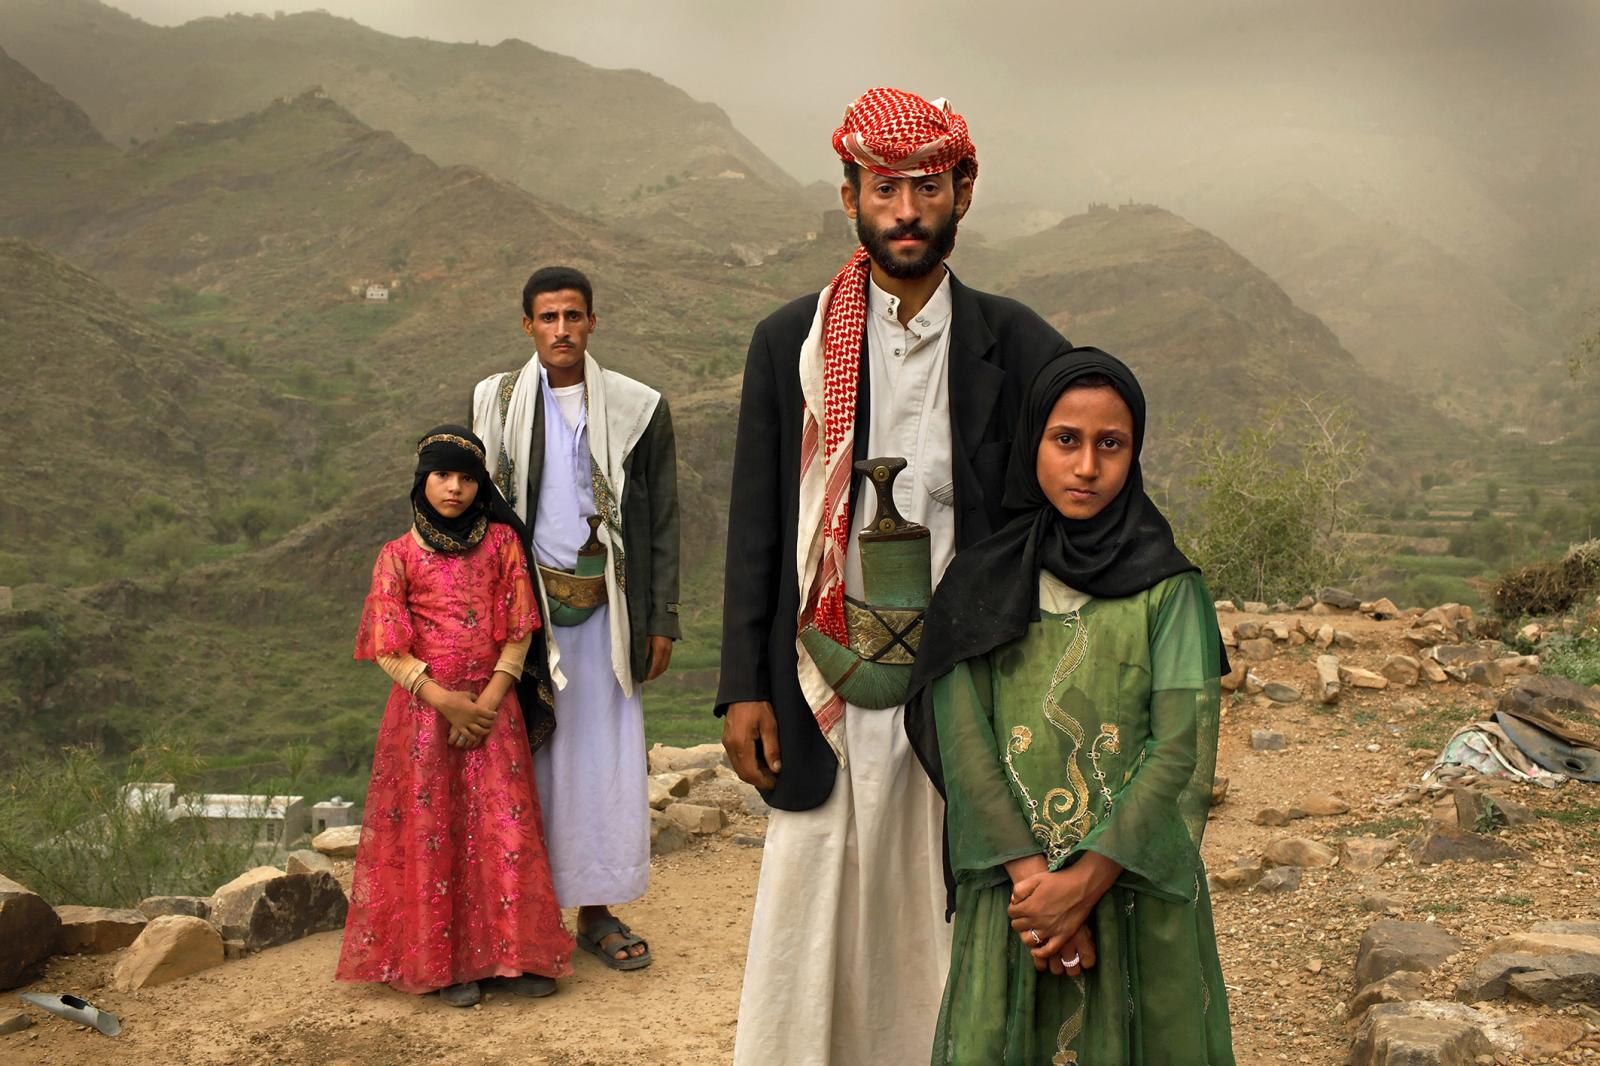 Stephanie Sinclair (née en 1973), Environs de Hajjah, Yémen. © Stephanie Sinclair / Too Young to Wed